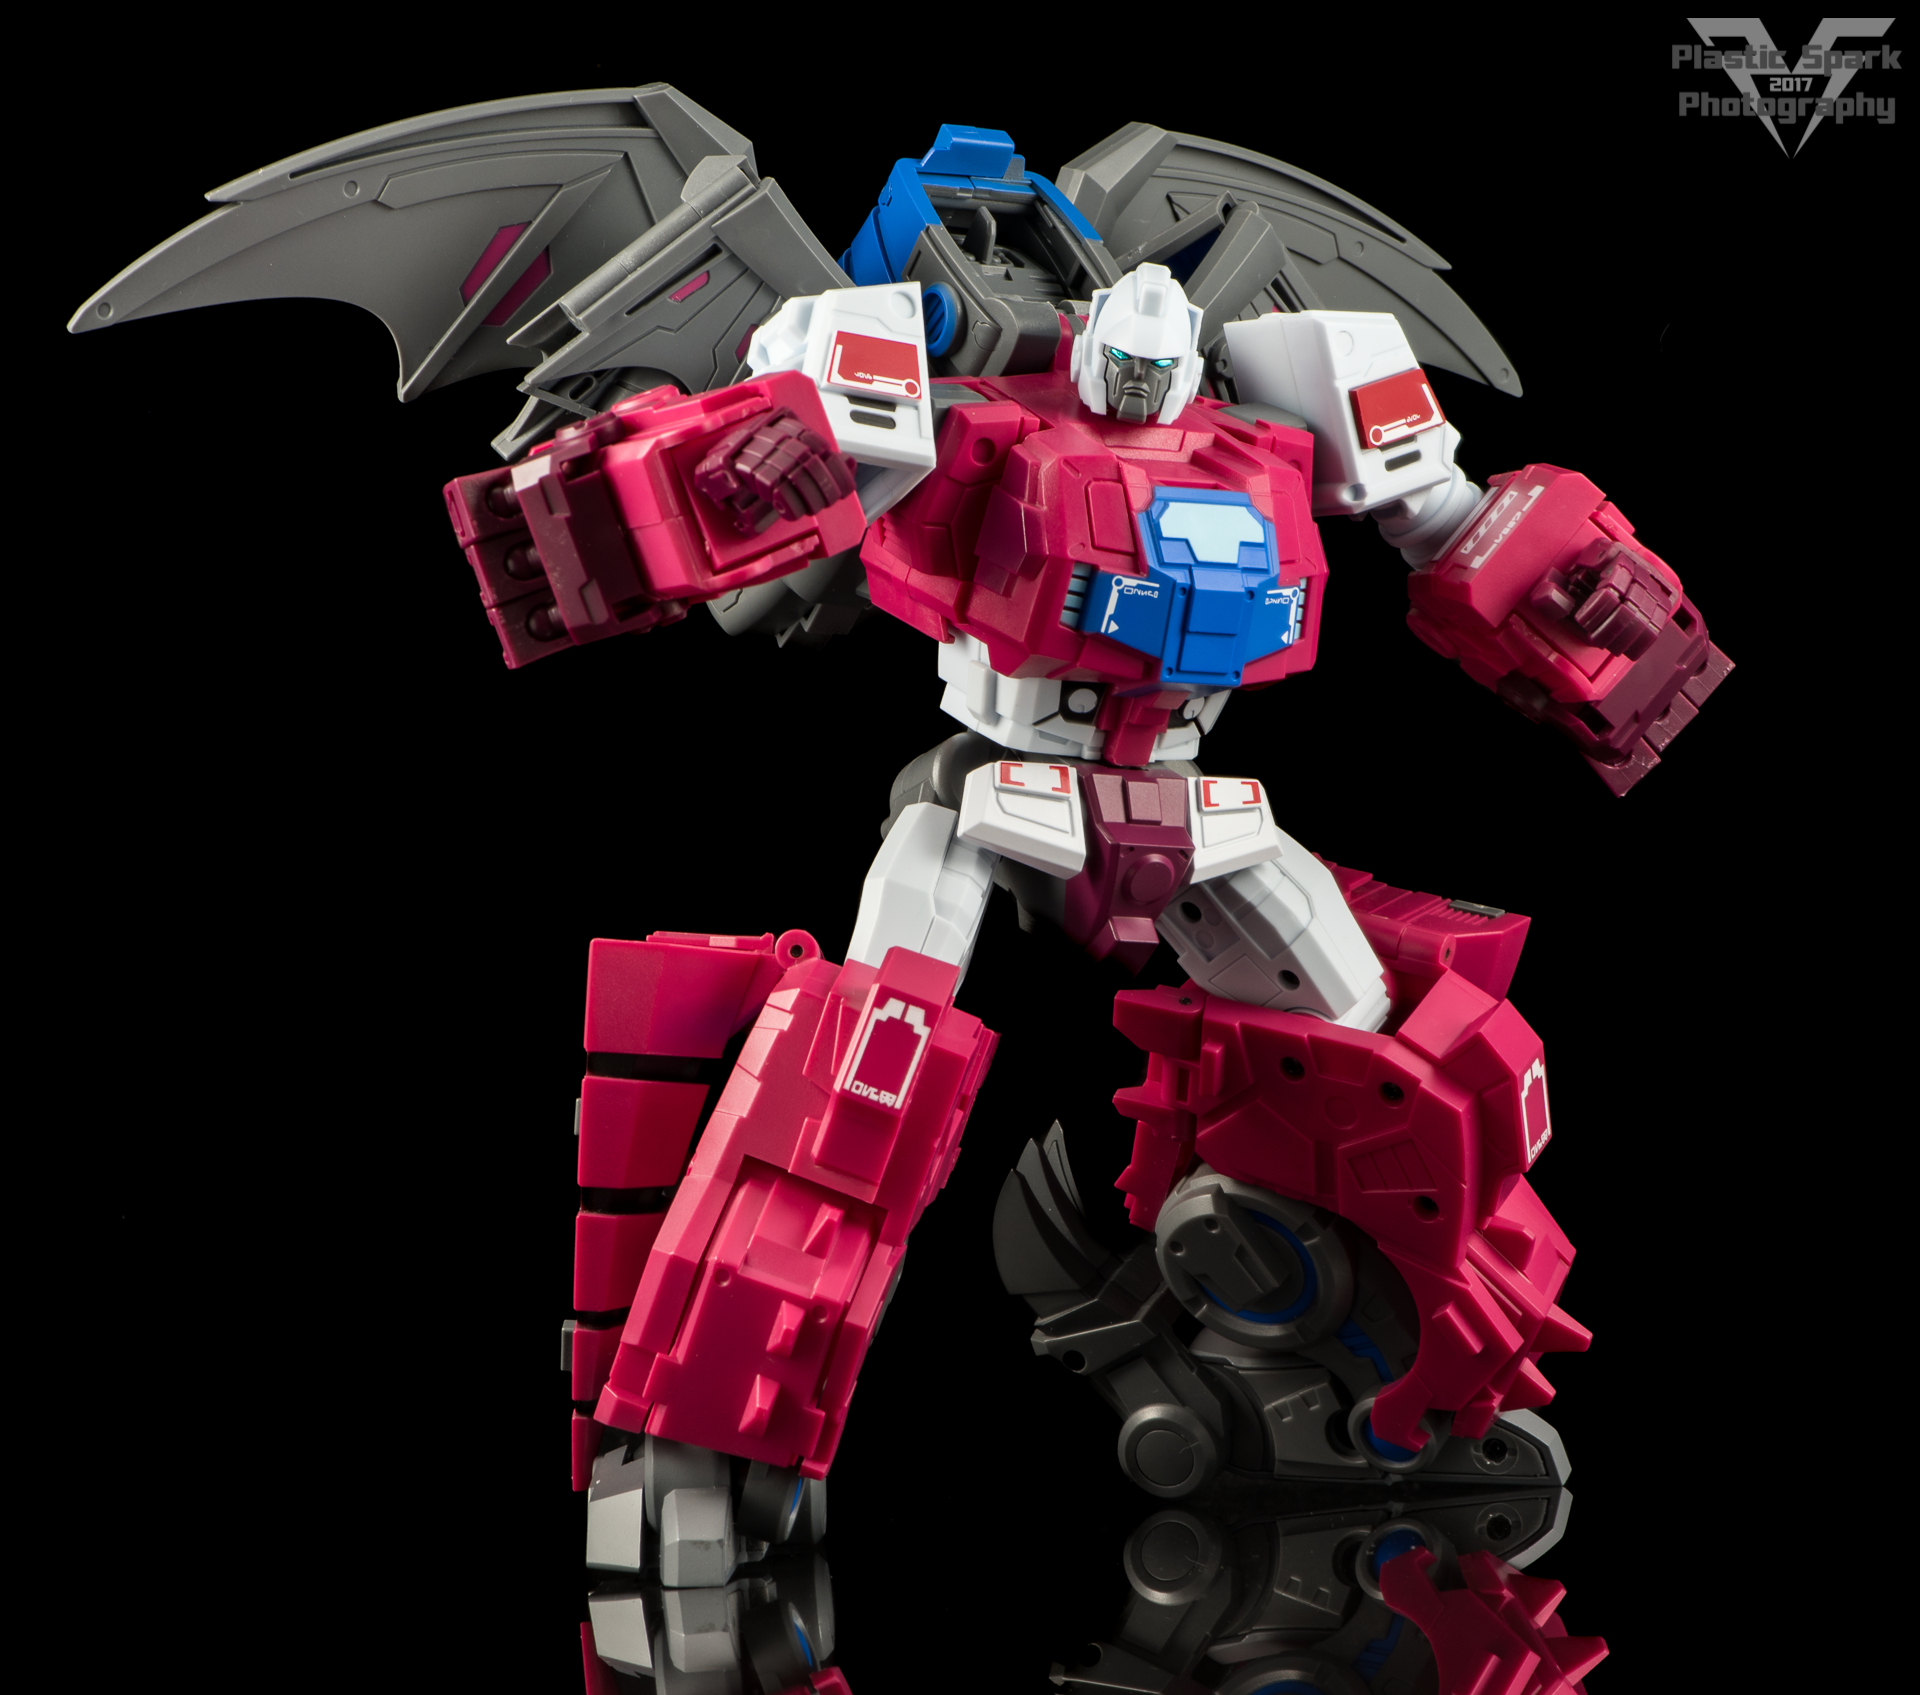 Fans-Hobby-MB-05-Flypro-(26-of-42).png